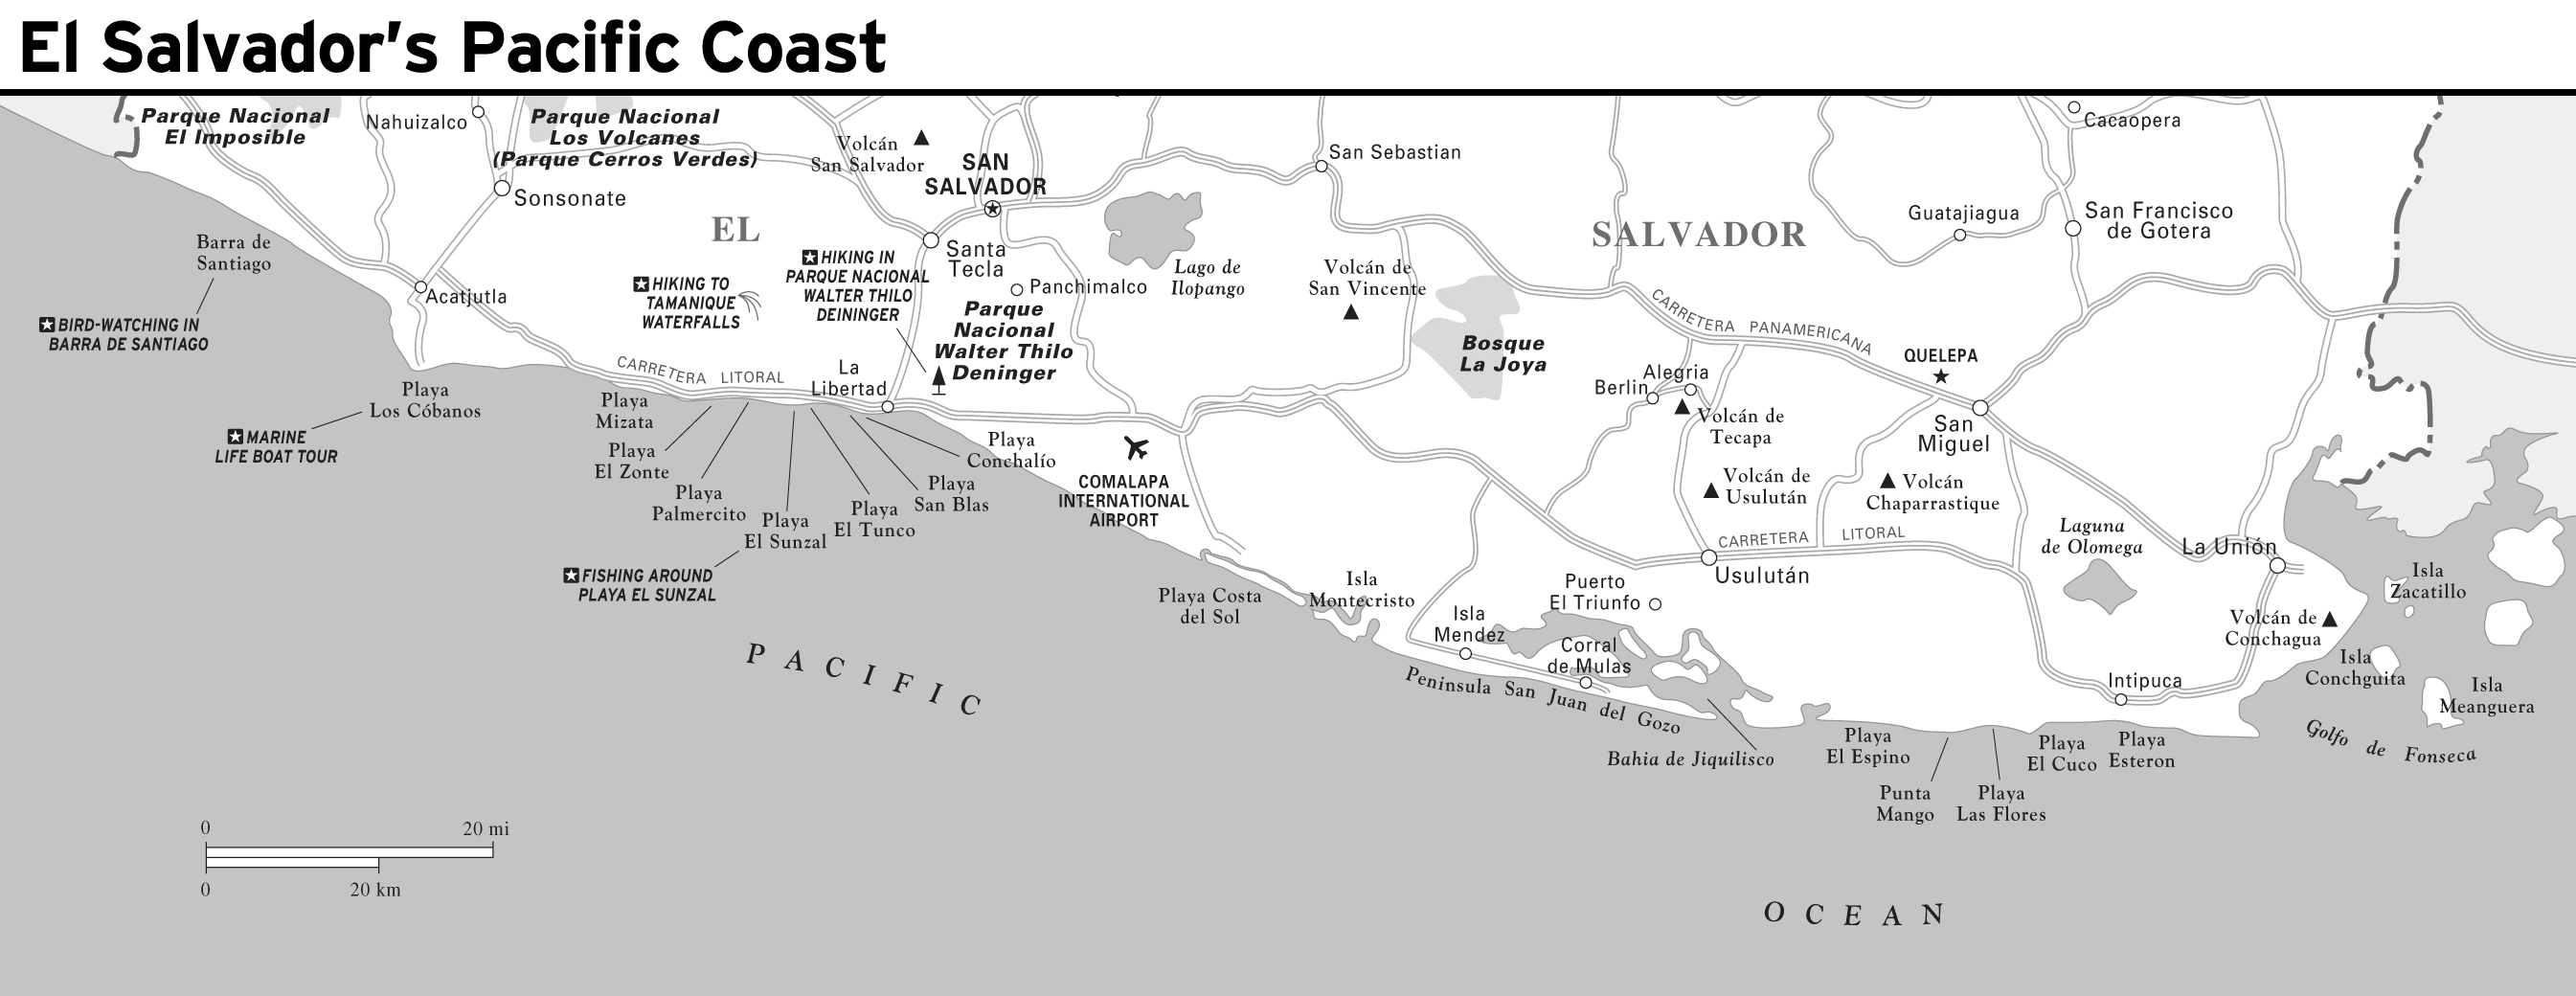 Large detailed map of El Salvadors Pacific Coast with roads and